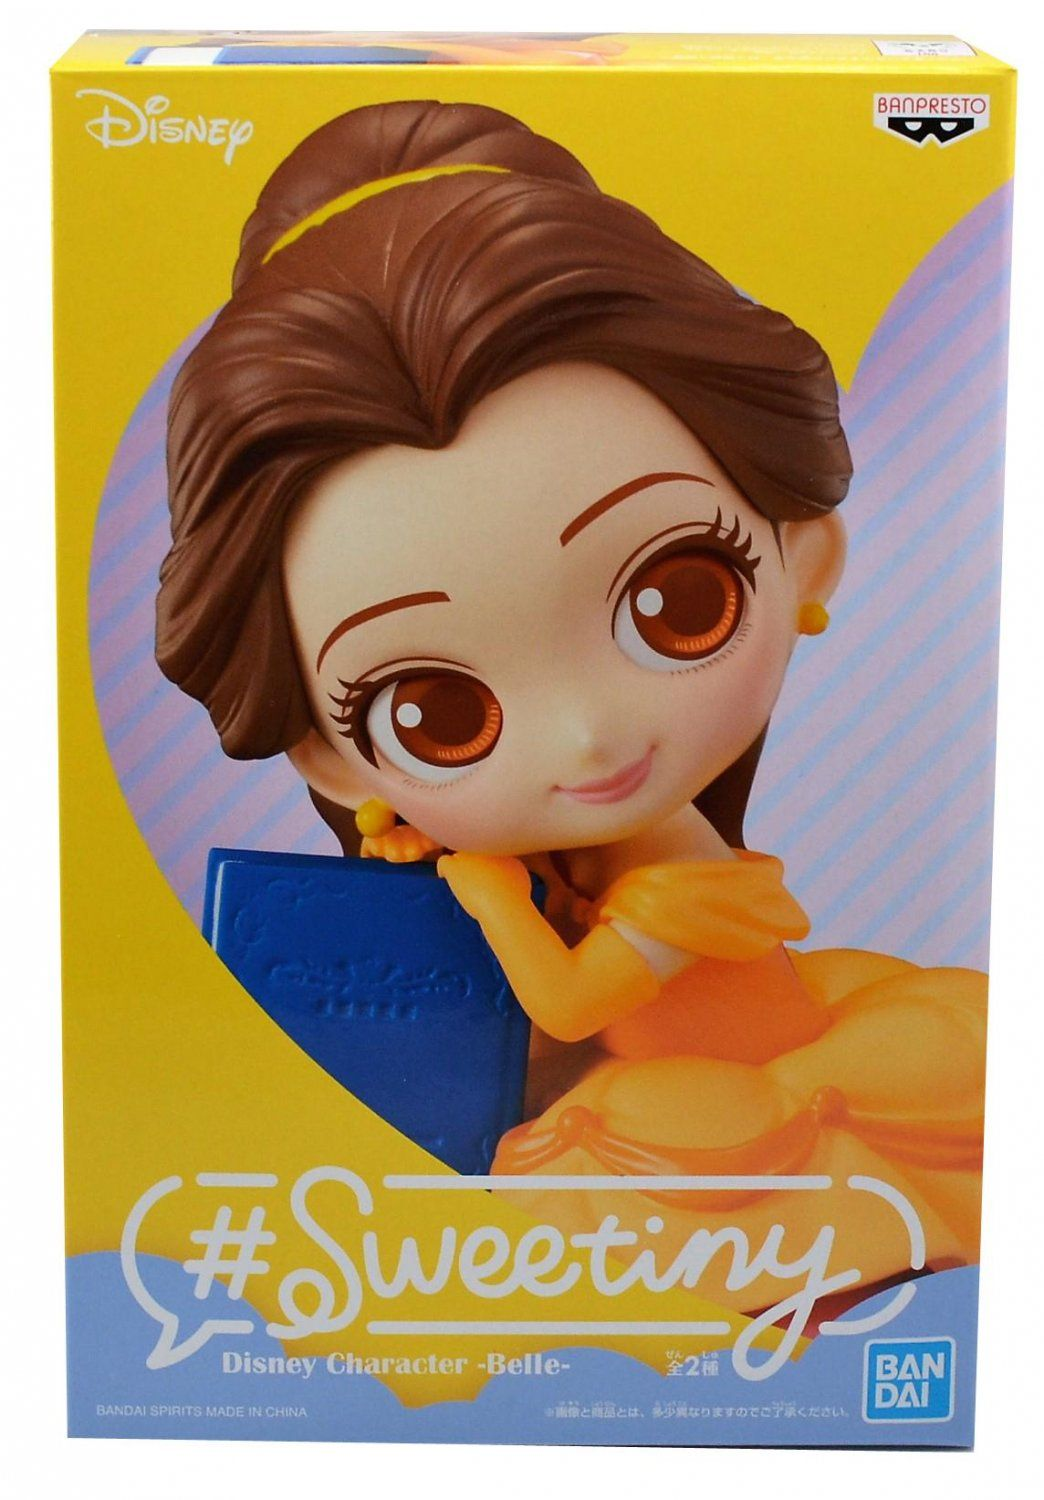 Фигурка Banpresto Sweetiny Disney Characters: Красавица и чудовище (Beauty & The Beast) Белль Версия А (Belle Ver A) (85659P) 10 см